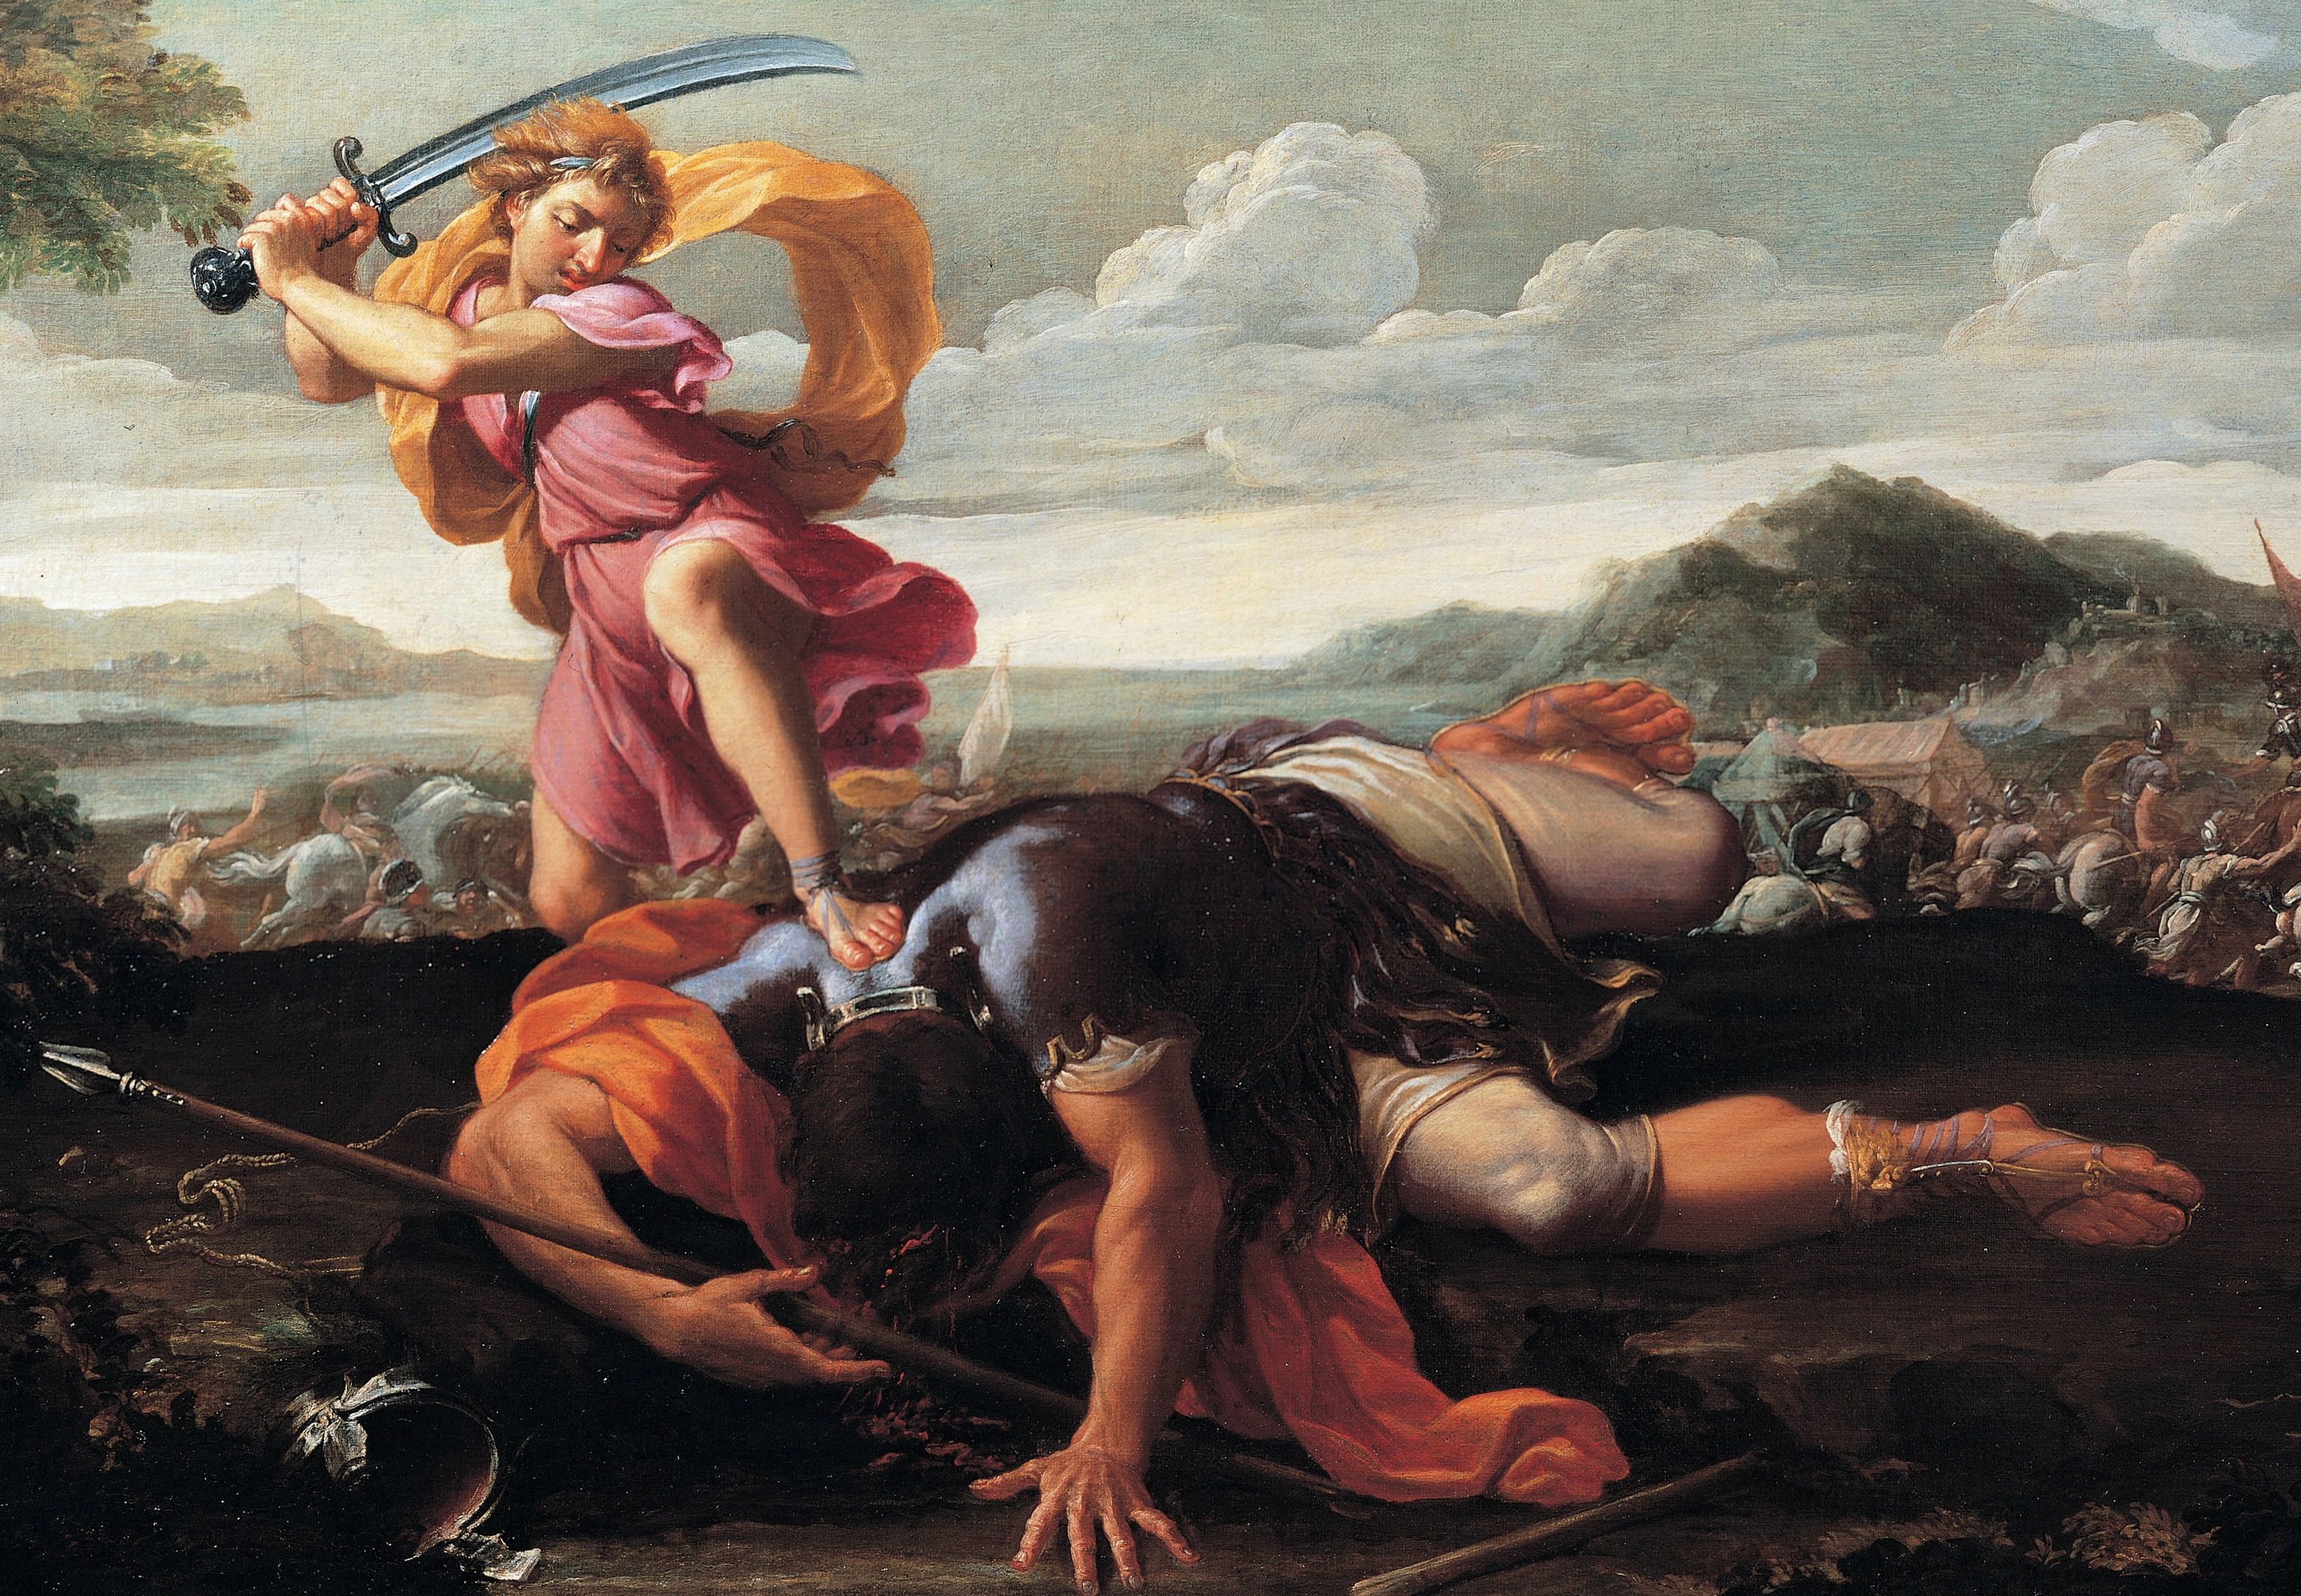 David and Goliath, 1650-1660. Artist: Courtois, Guillaume (1628-1679)